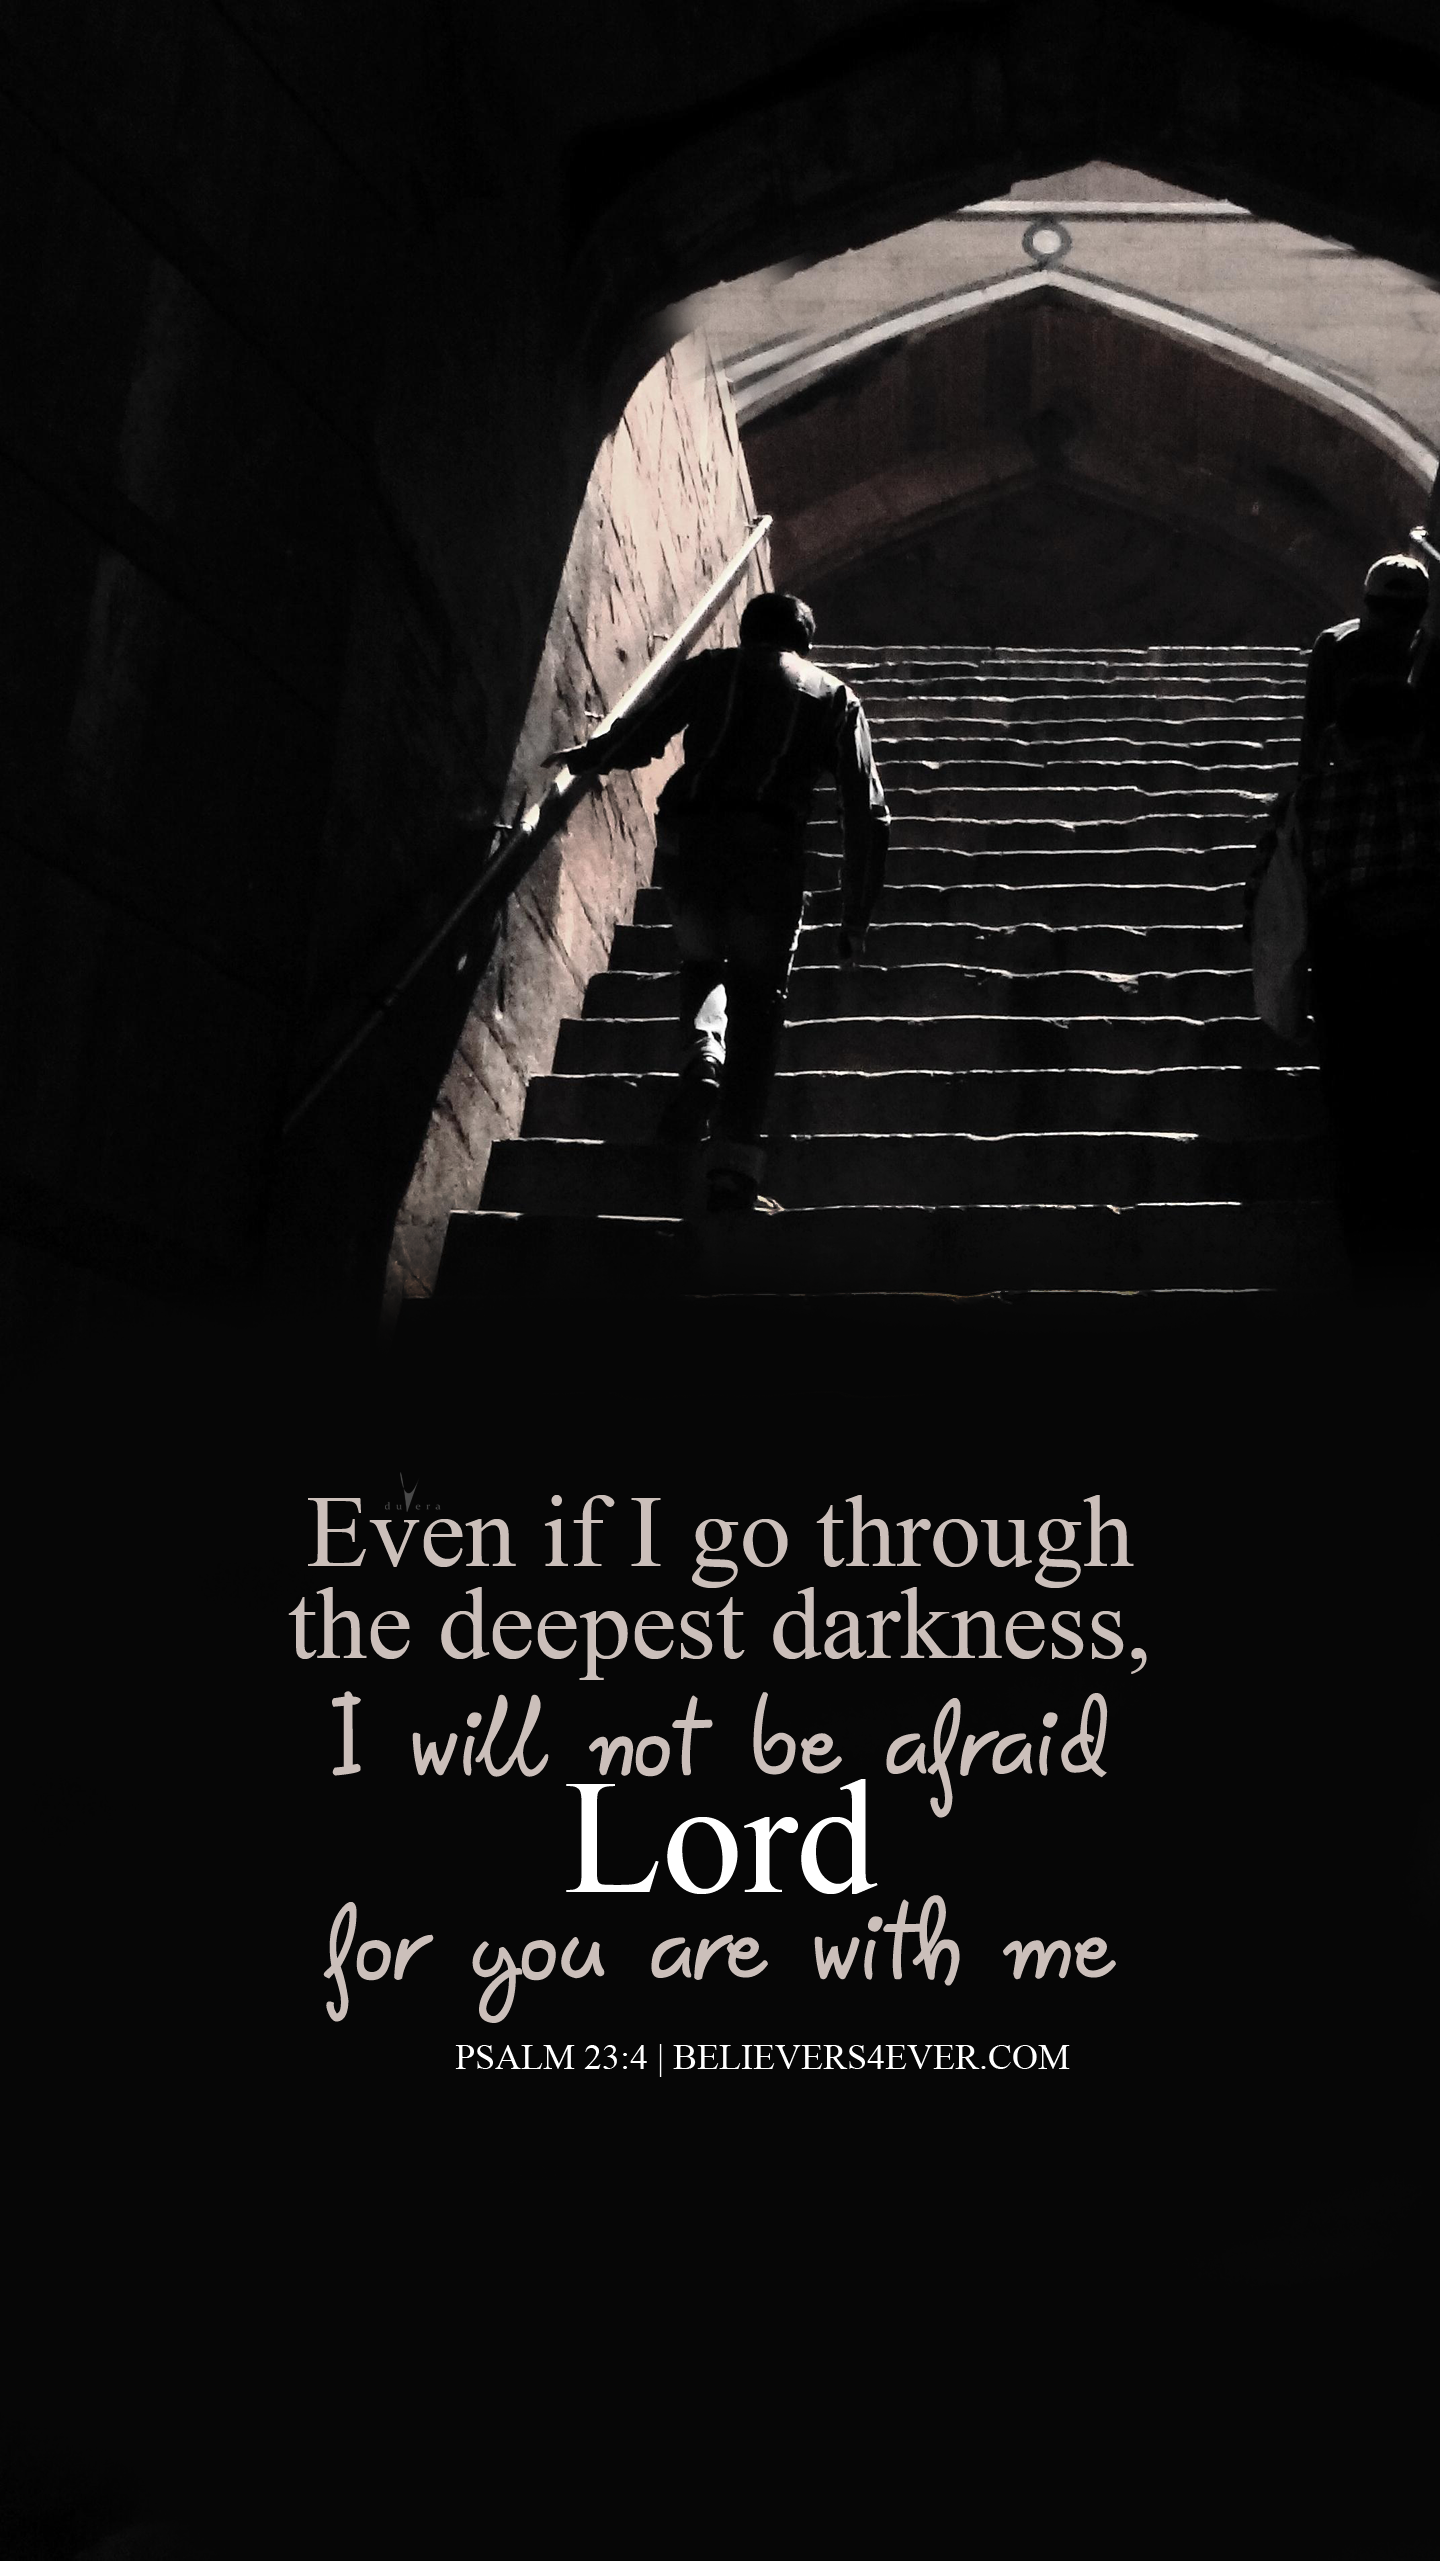 The deepest darkness Phone wallpaper quotes, Psalms